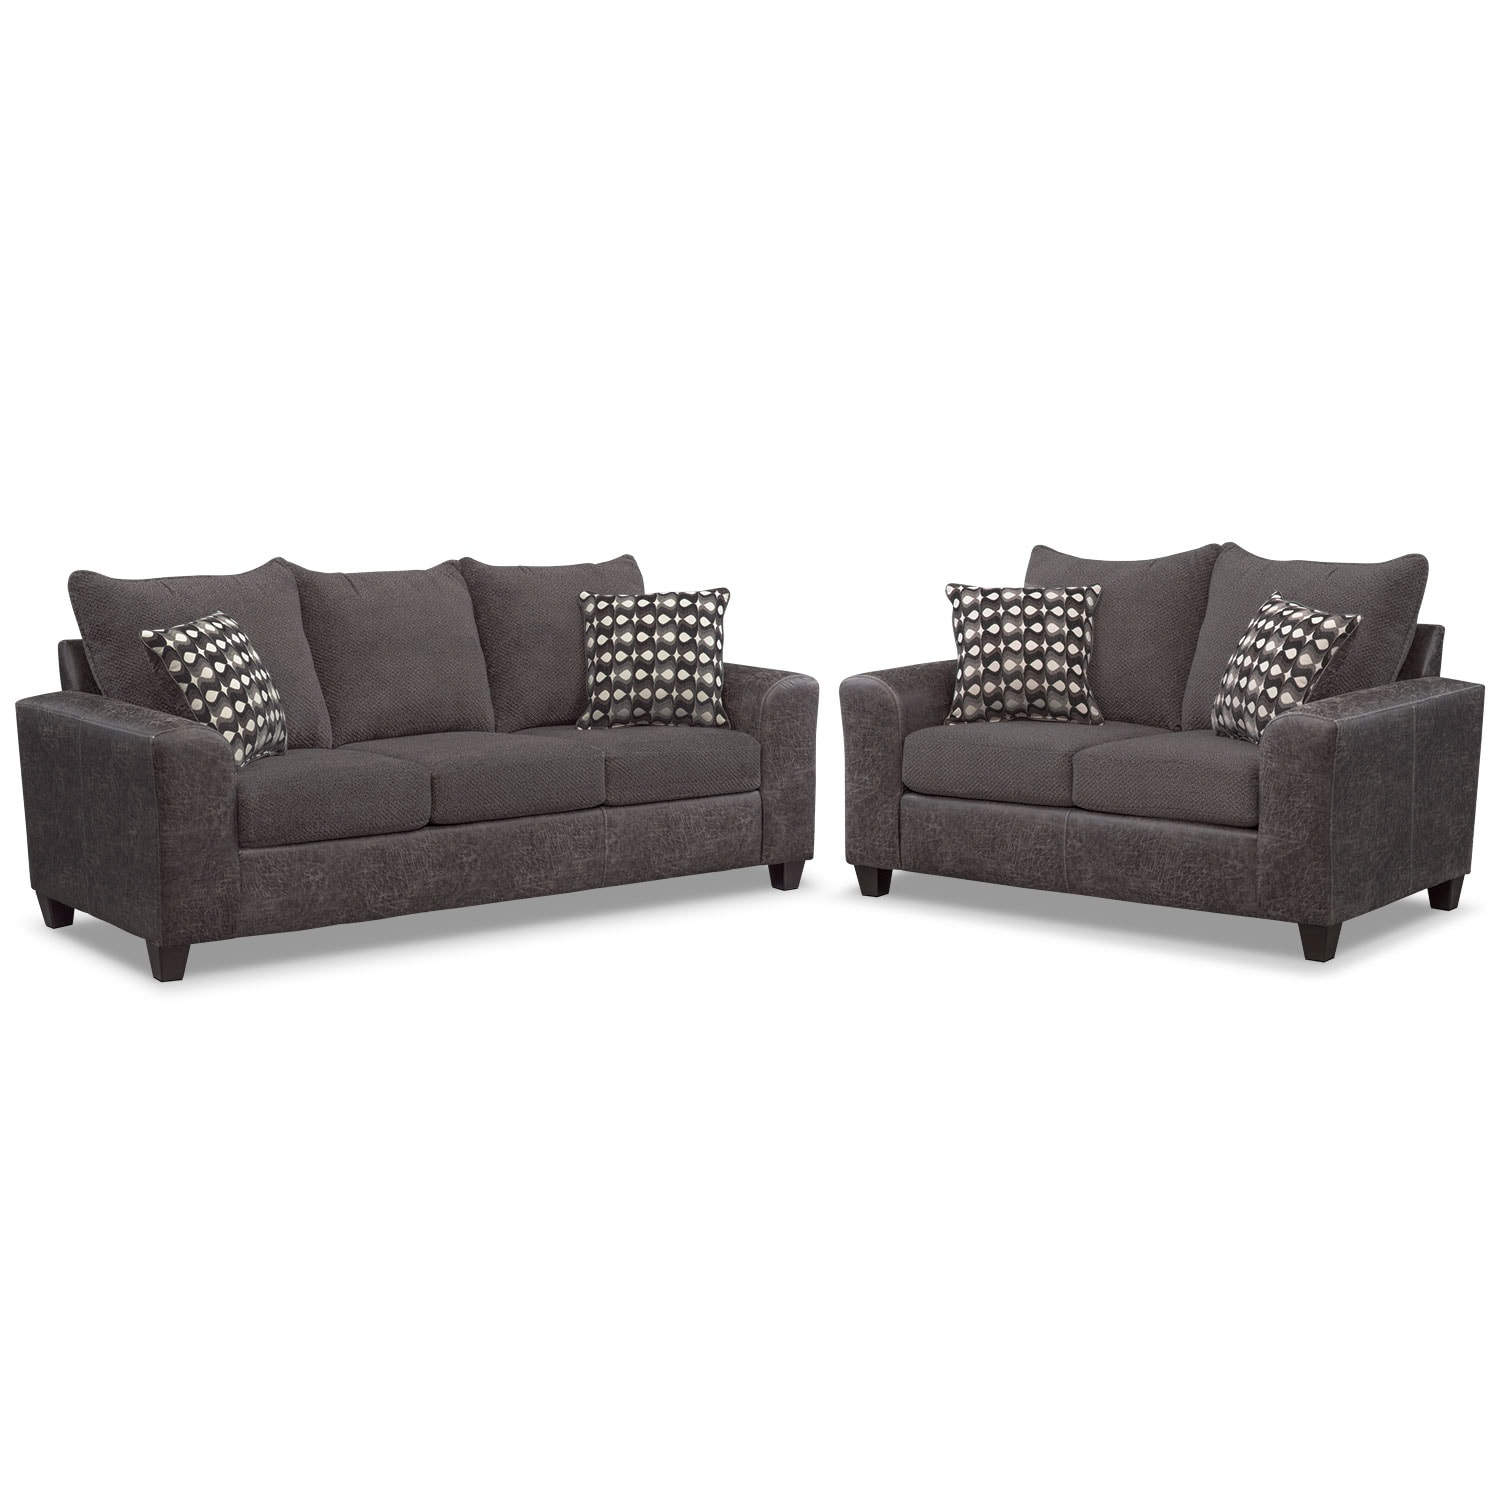 Living Room Furniture - Brando Sofa and Loveseat Set - Smoke